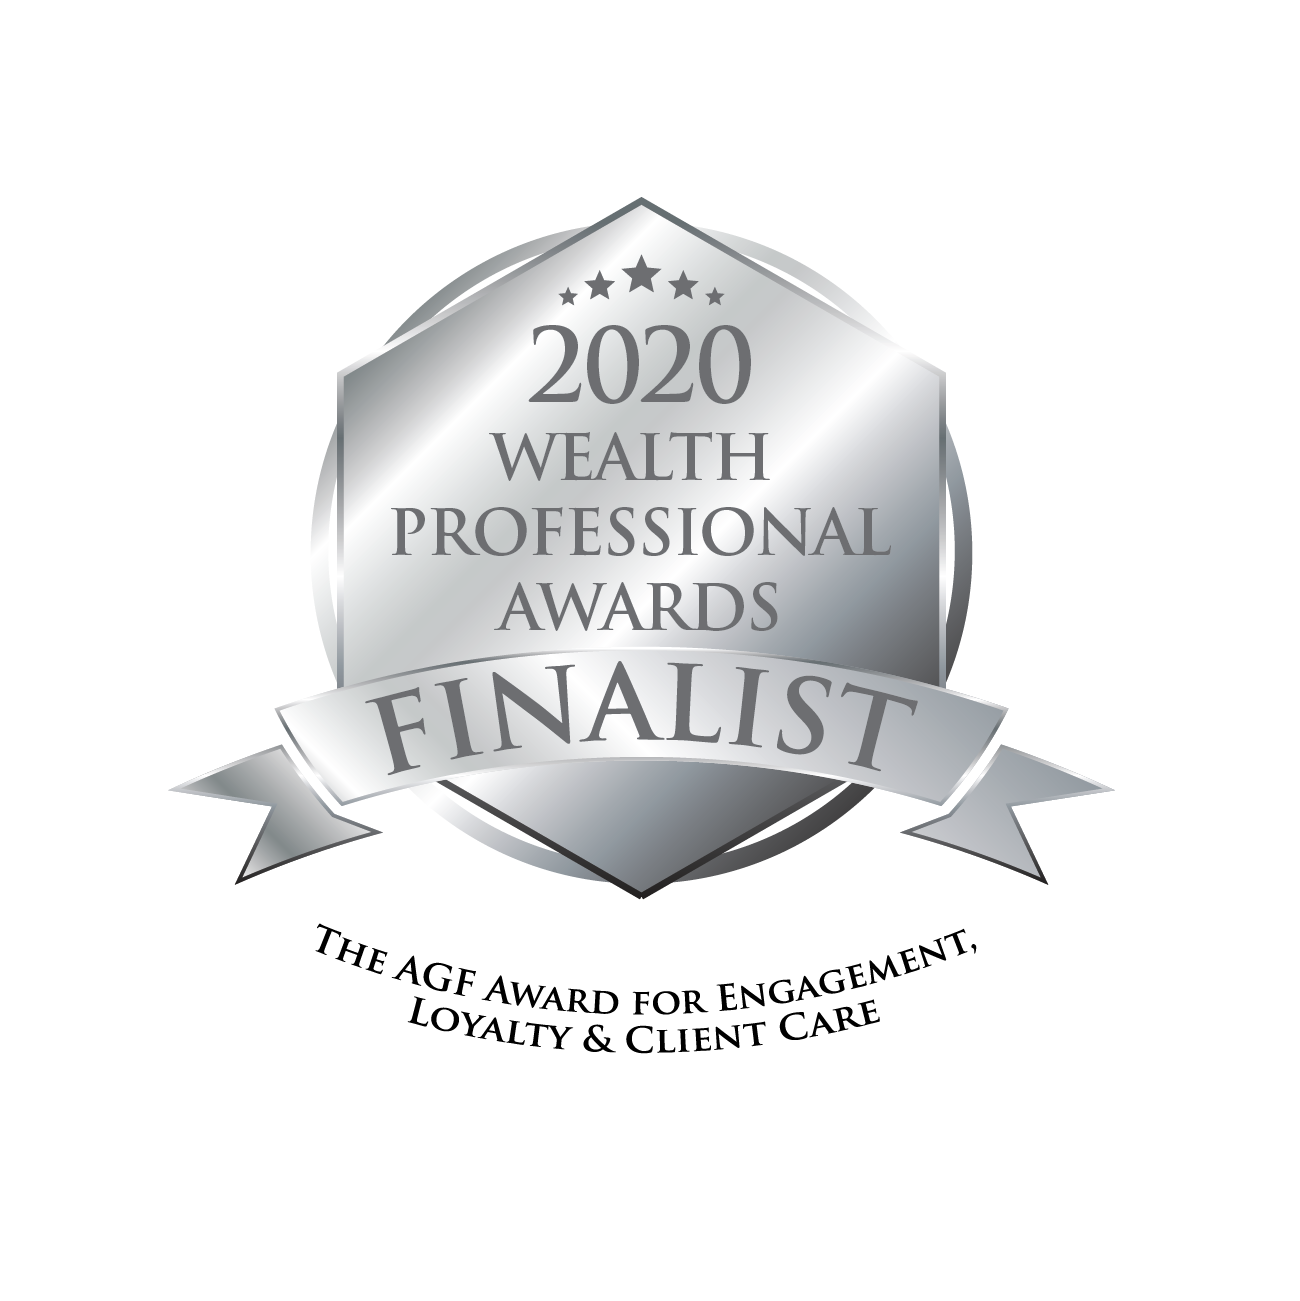 Allen Private Wealth: AGF Award for Engagement, Loyalty & Client Care